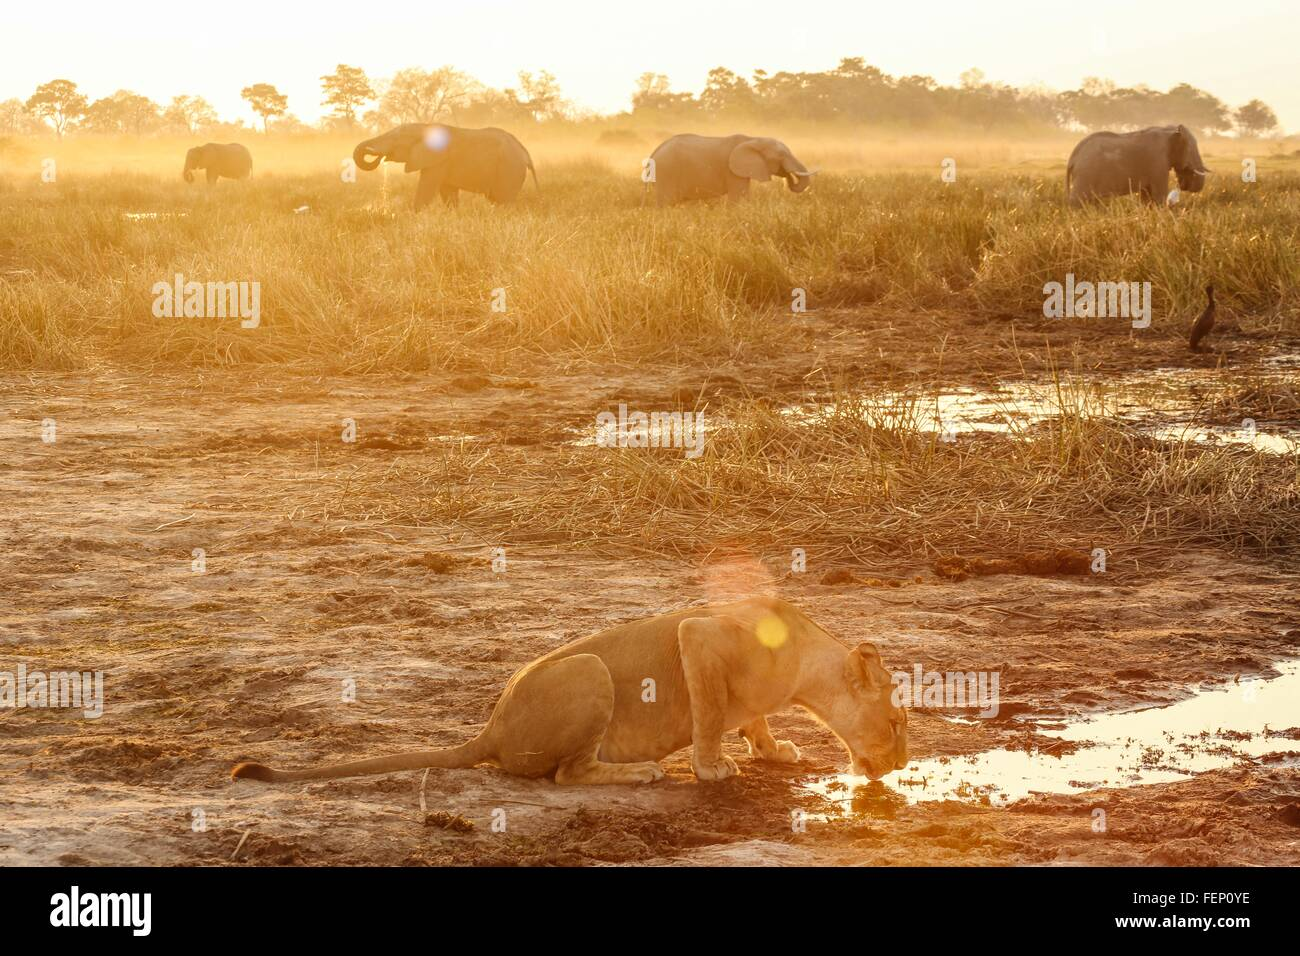 Lioness drinking water, elephants in background, Botswana - Stock Image